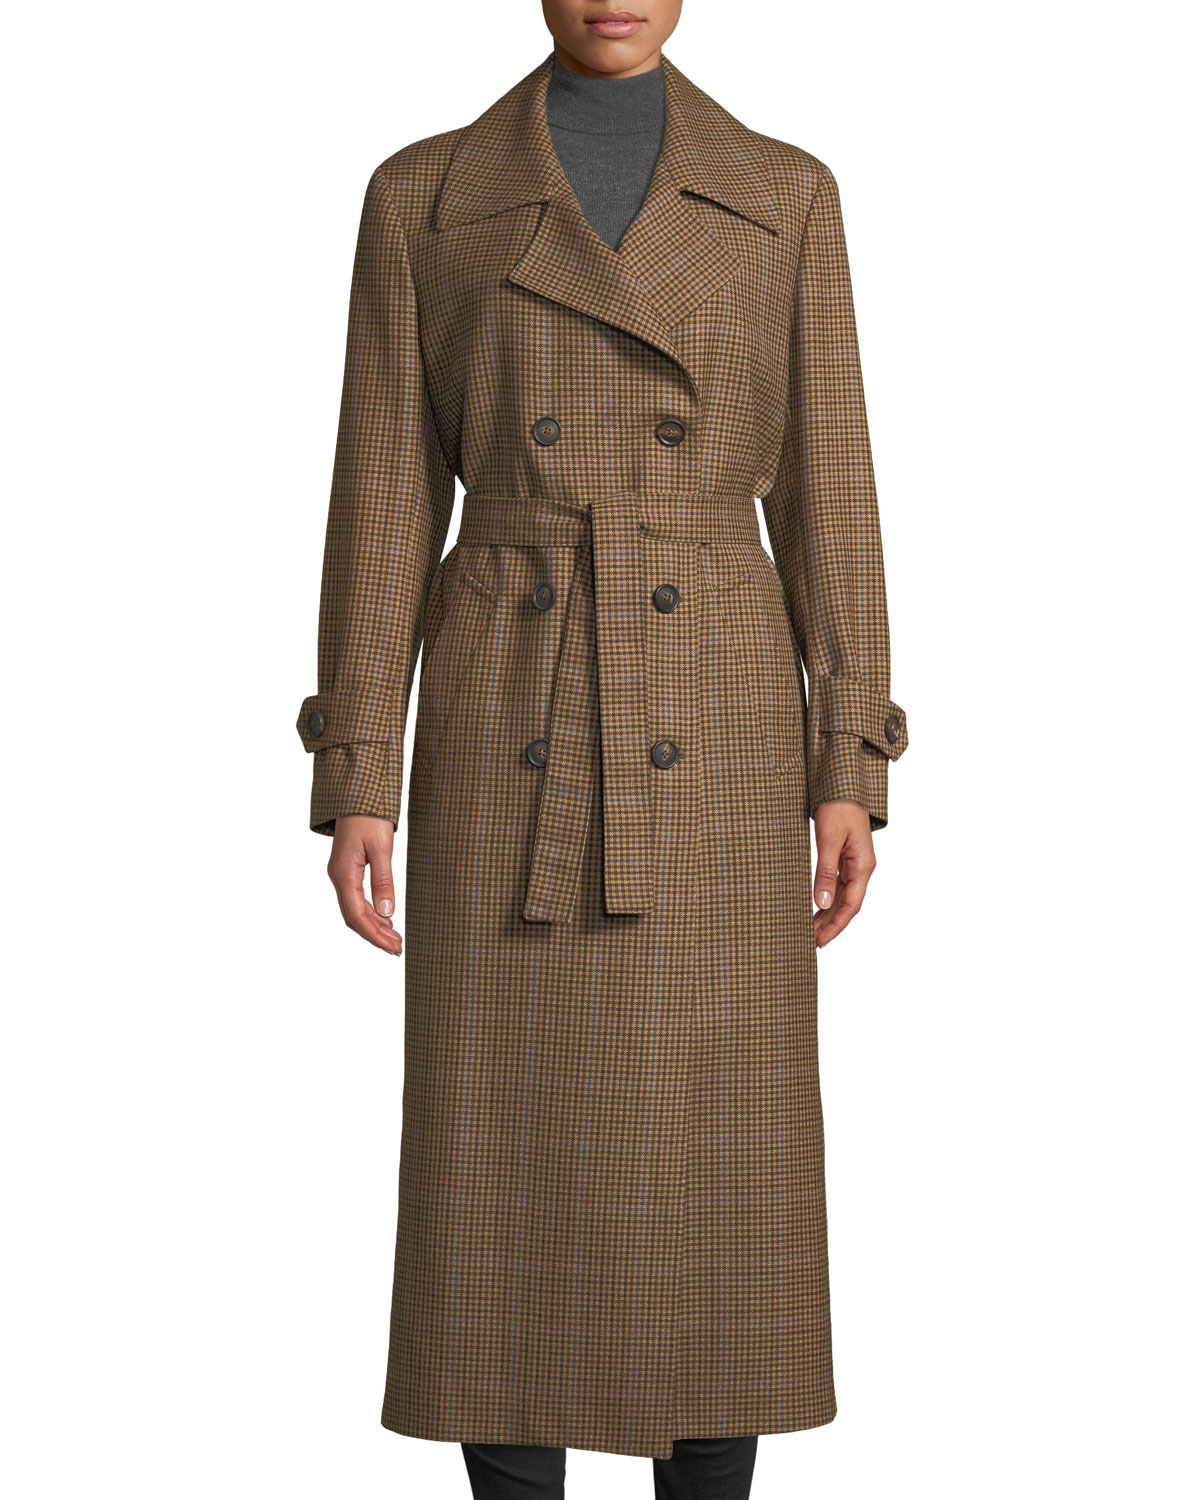 GIULIVA HERITAGE THE CHRISTIE DOUBLE-BREASTED PLAID WOOL TRENCH COAT